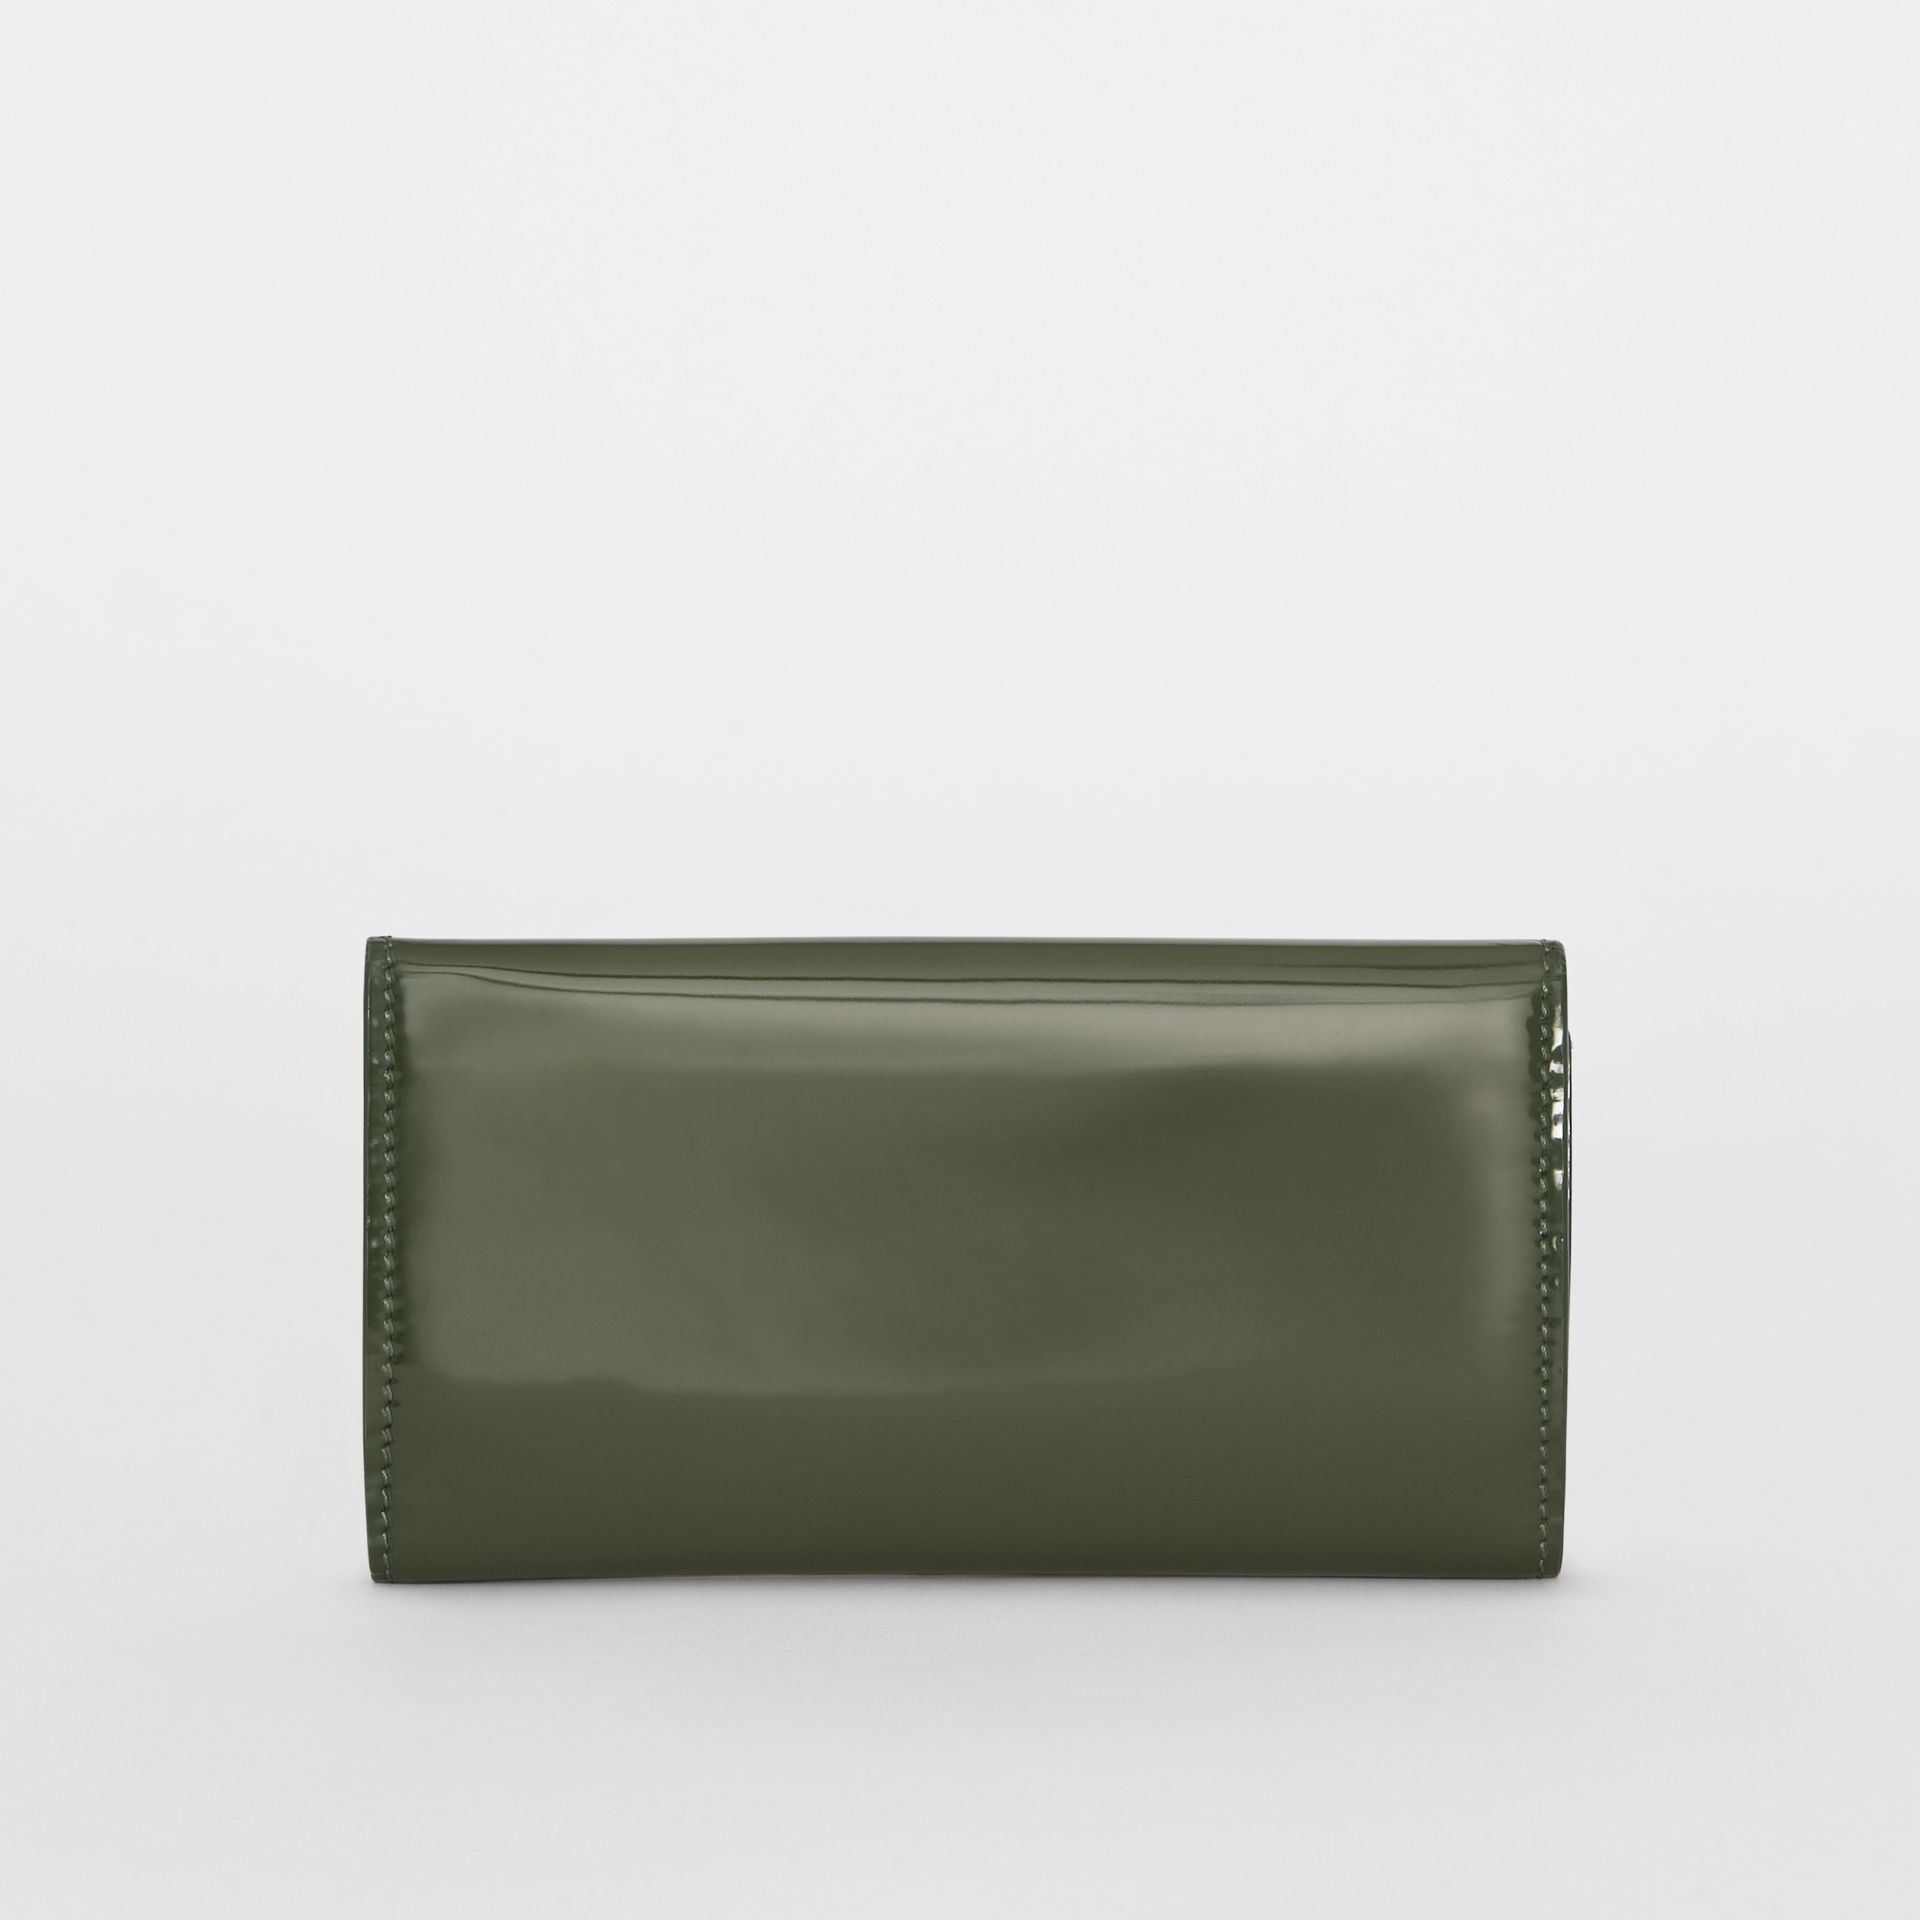 D-ring Patent Leather Continental Wallet in Dark Forest Green - Women | Burberry United States - gallery image 2